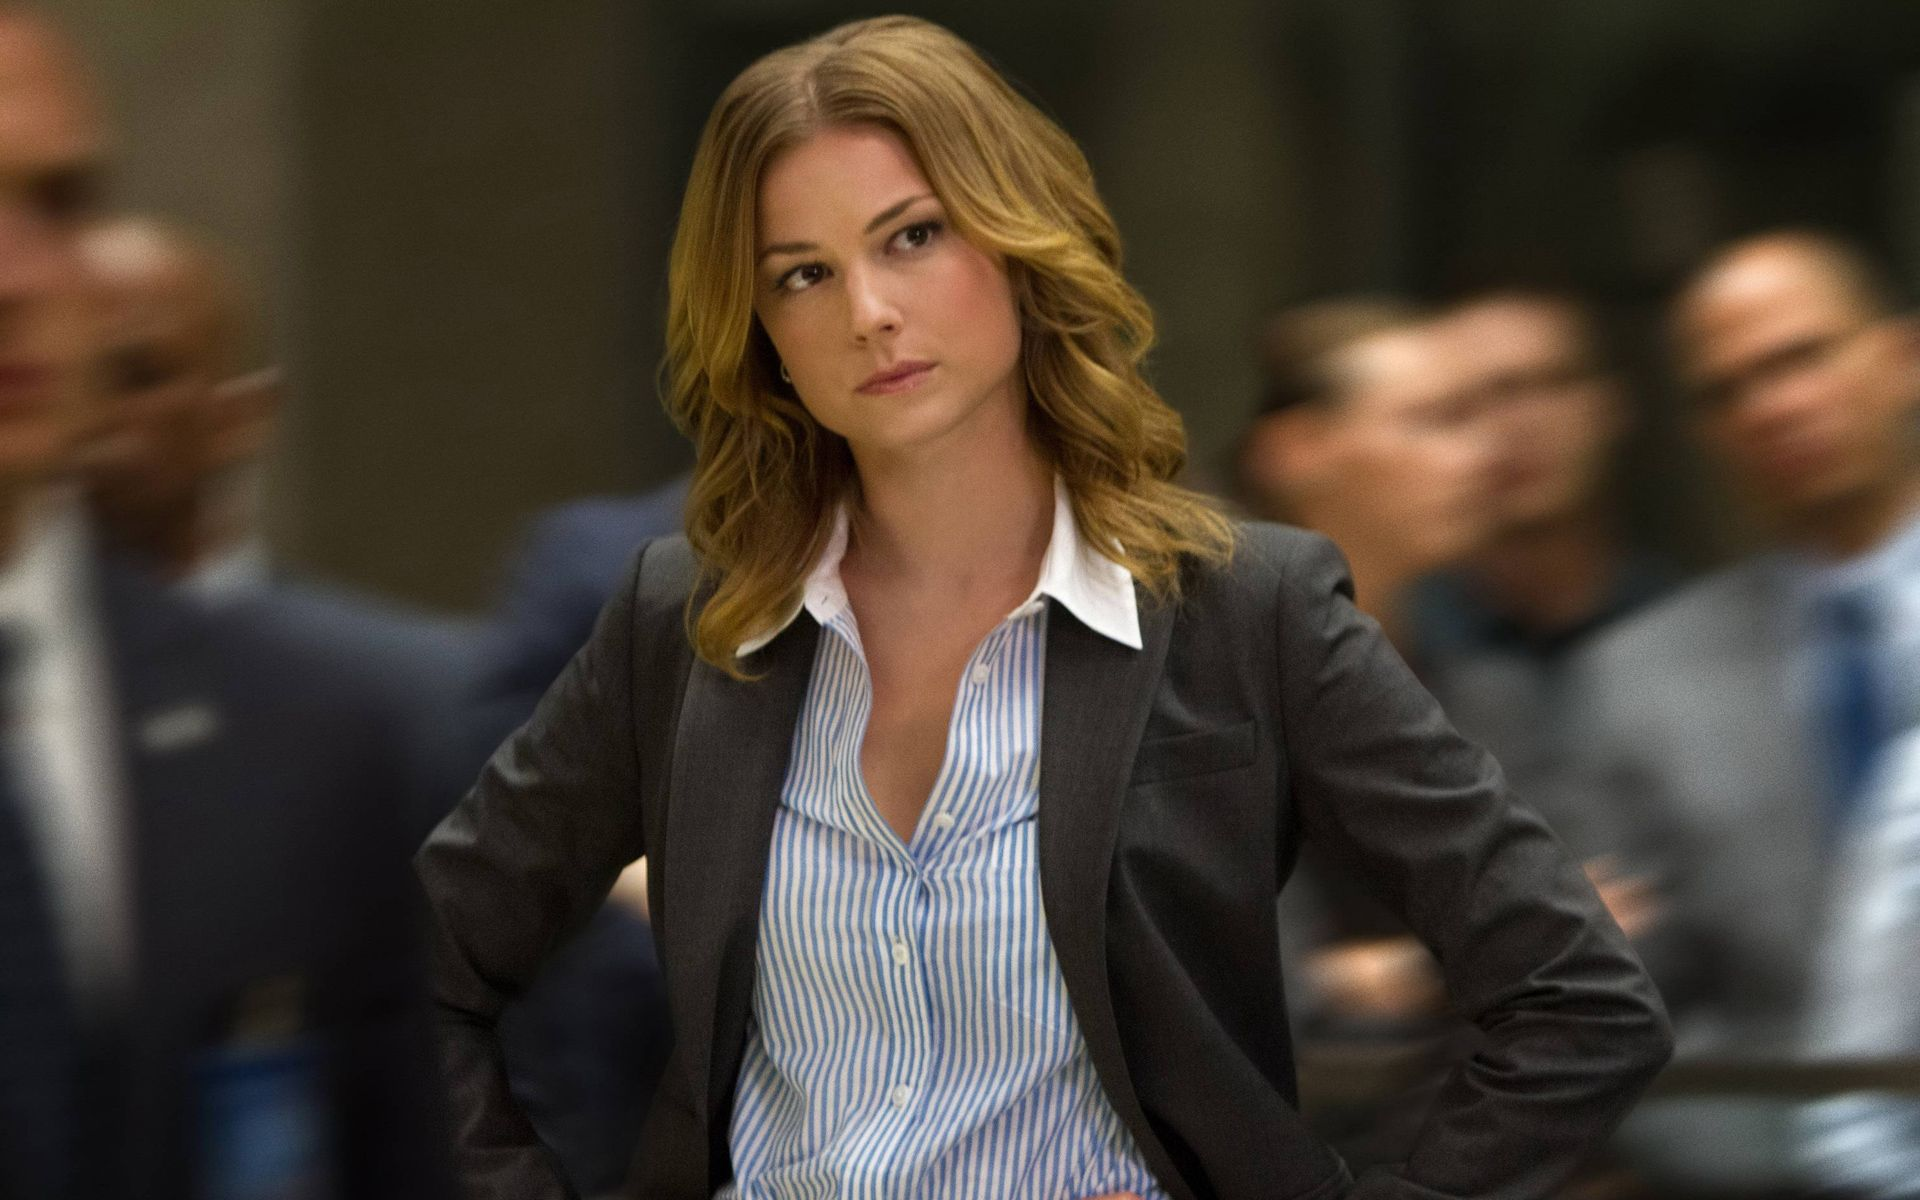 Marvel's Falcon and Winter Soldier bringing back Sharon Carter and introducing classic villain